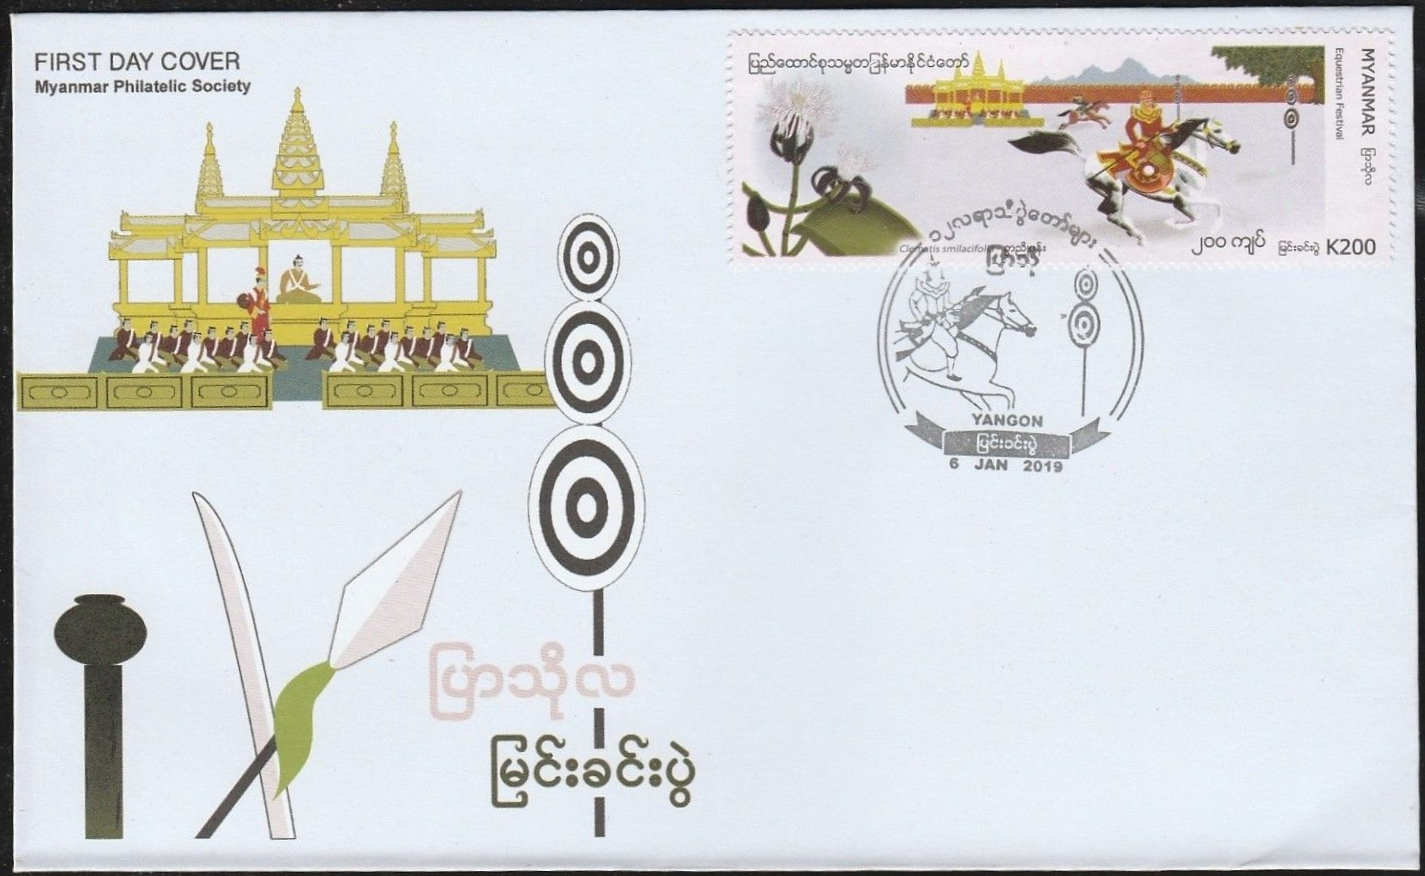 Myanmar - Equestrian Festival (January 6, 2019) first day cover